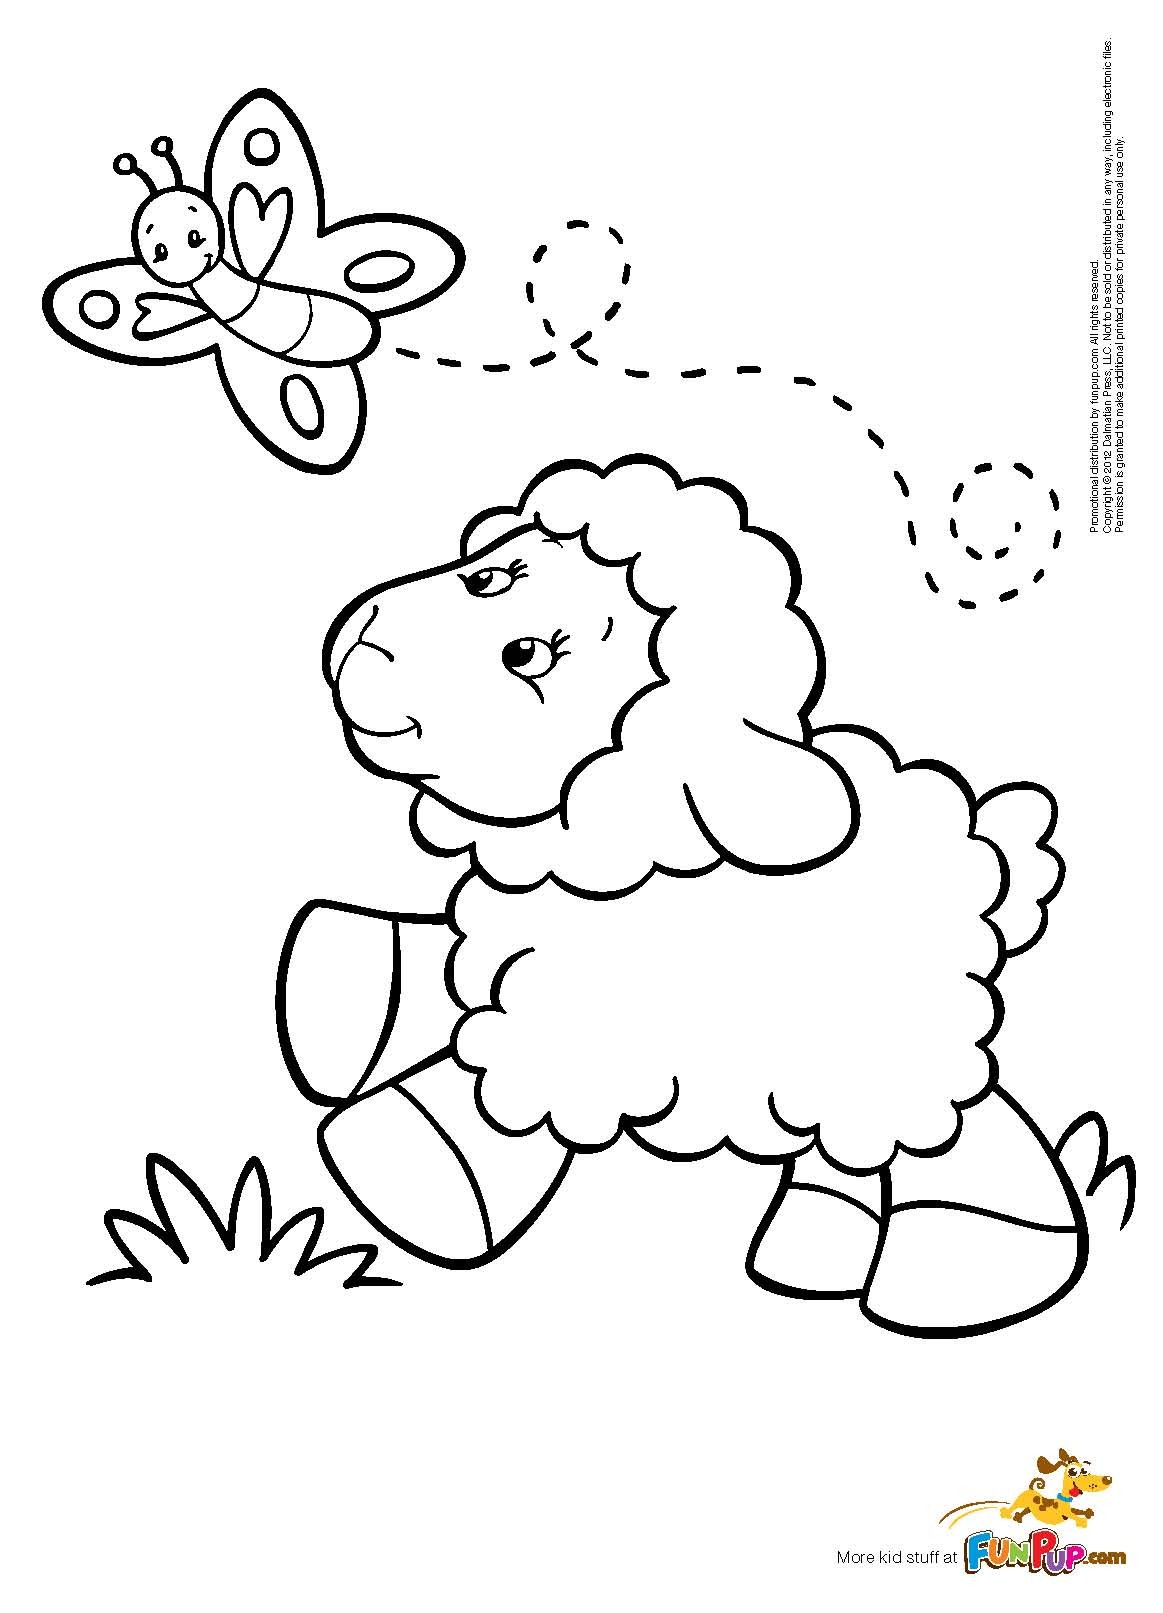 Lamb Outline Drawing at GetDrawings.com | Free for personal use Lamb ...